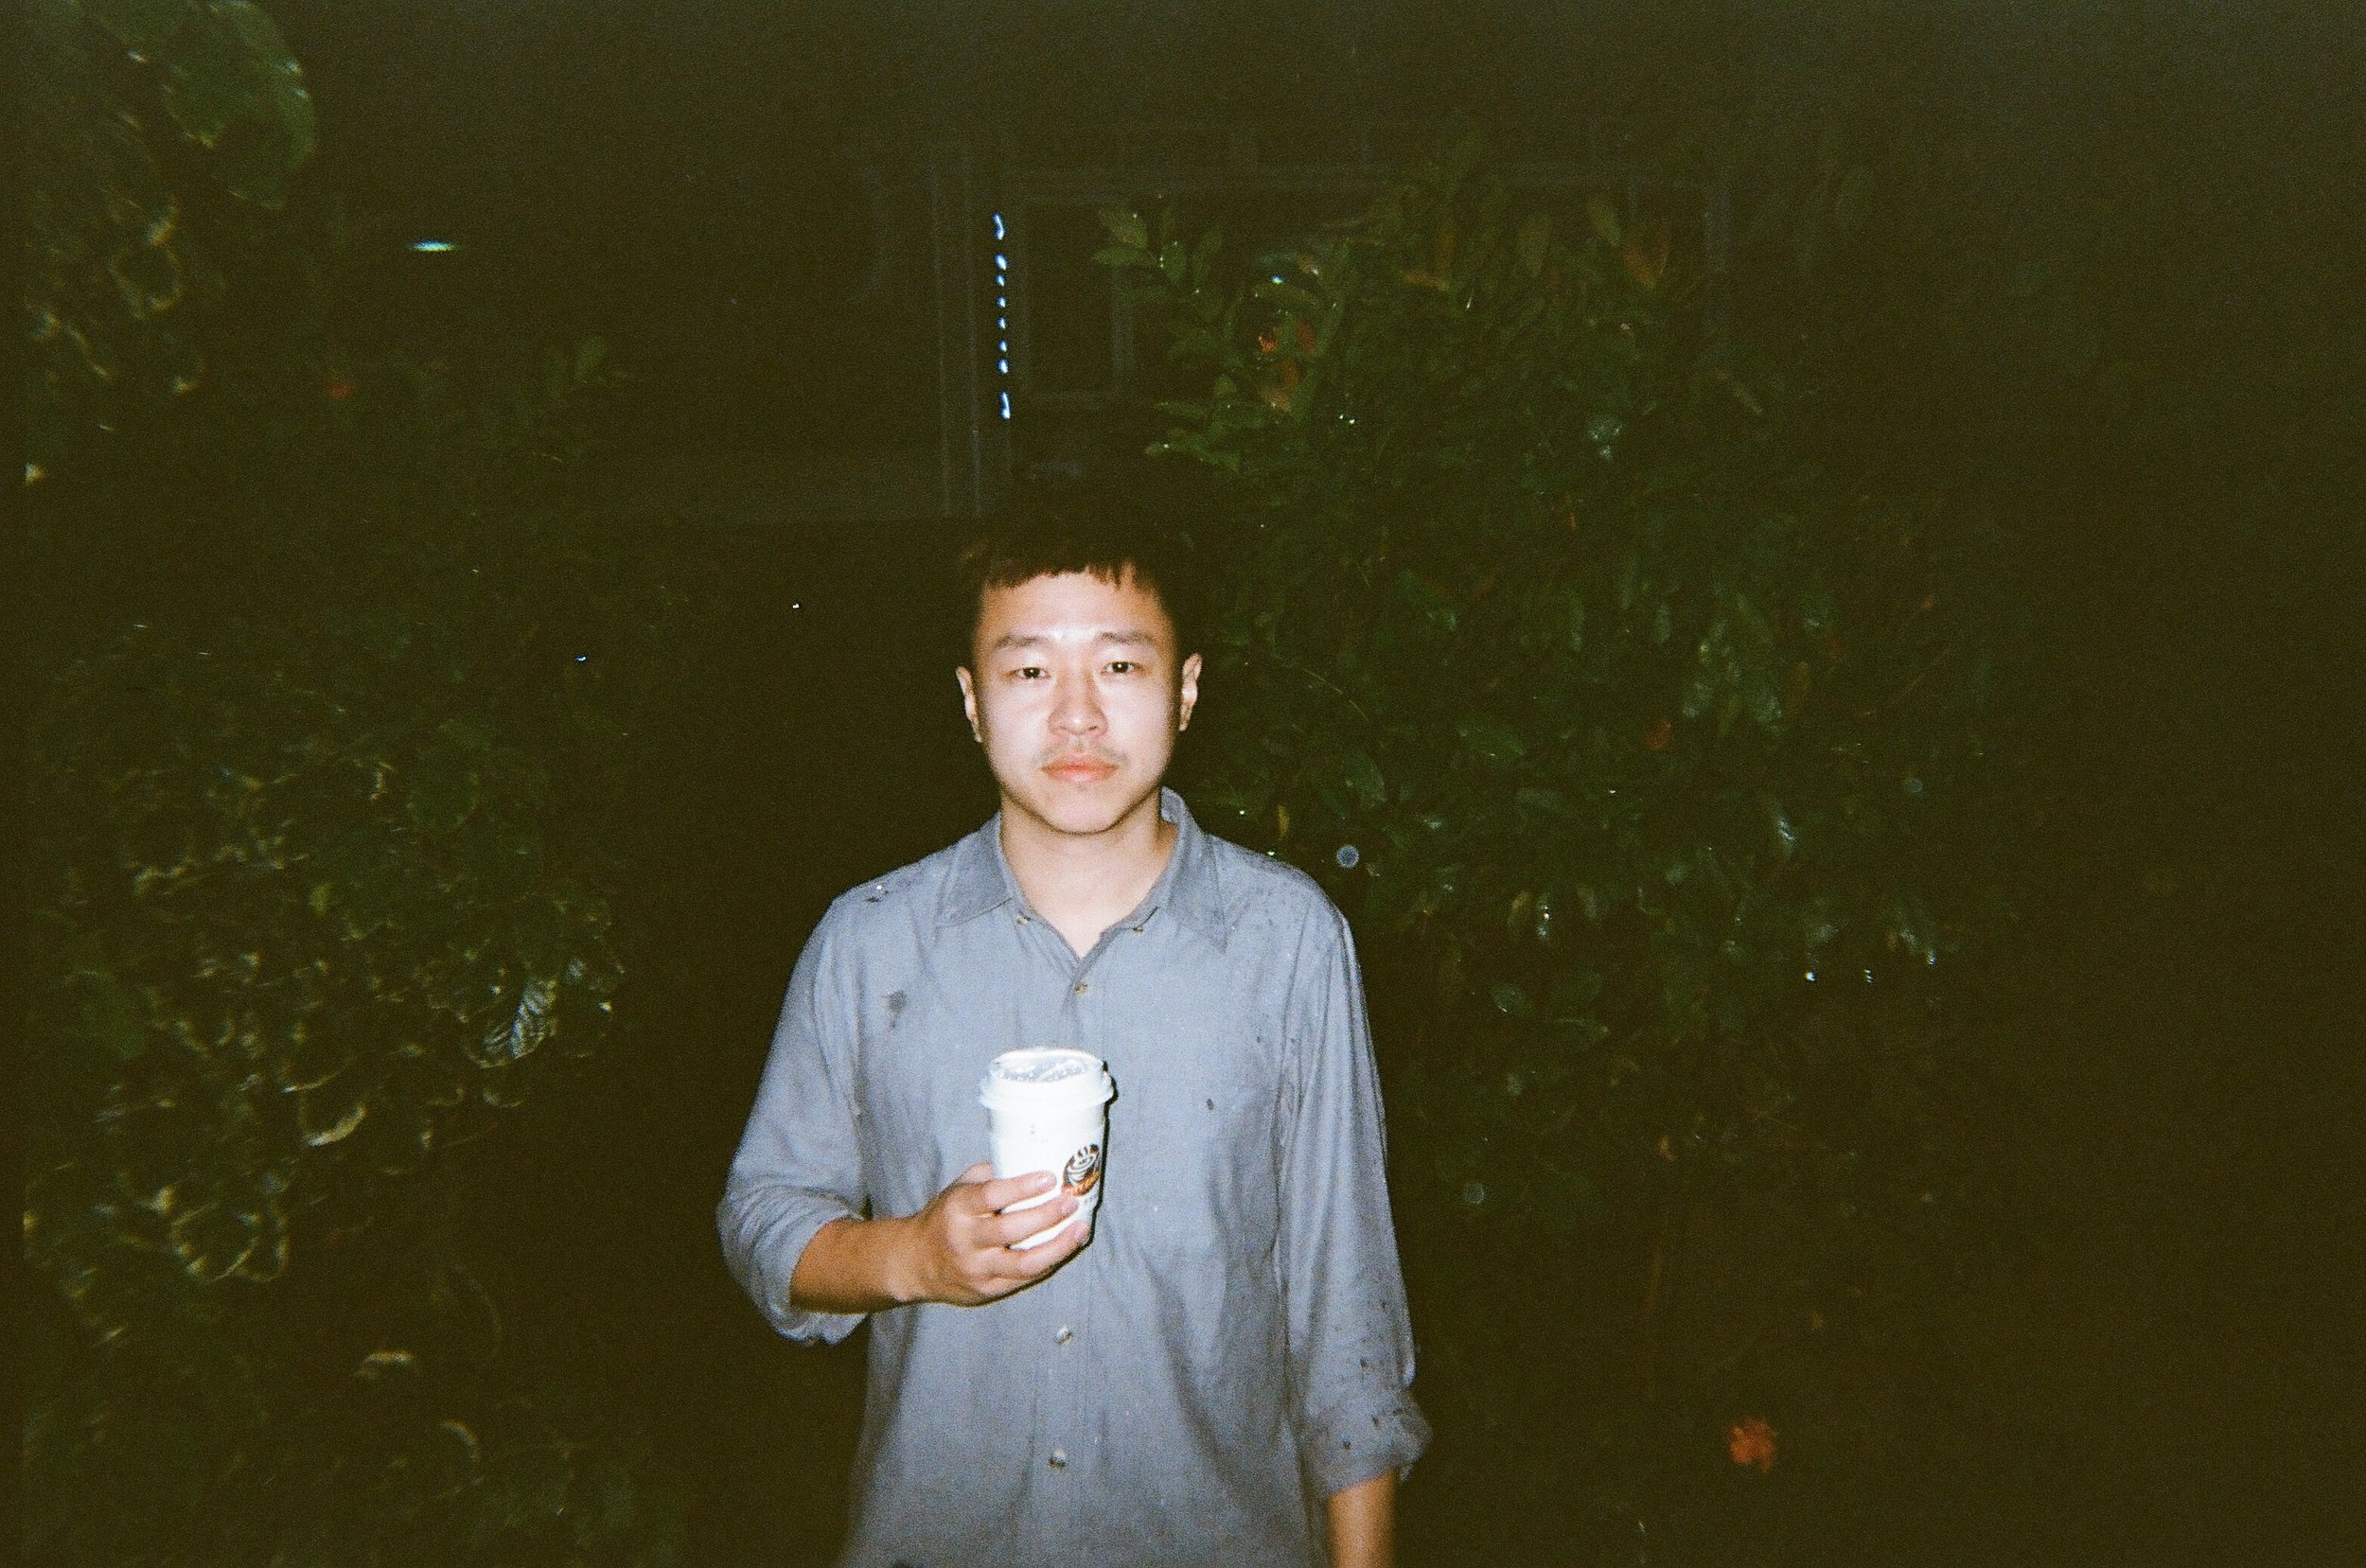 Lomography Simple Use + iso 400 fillm